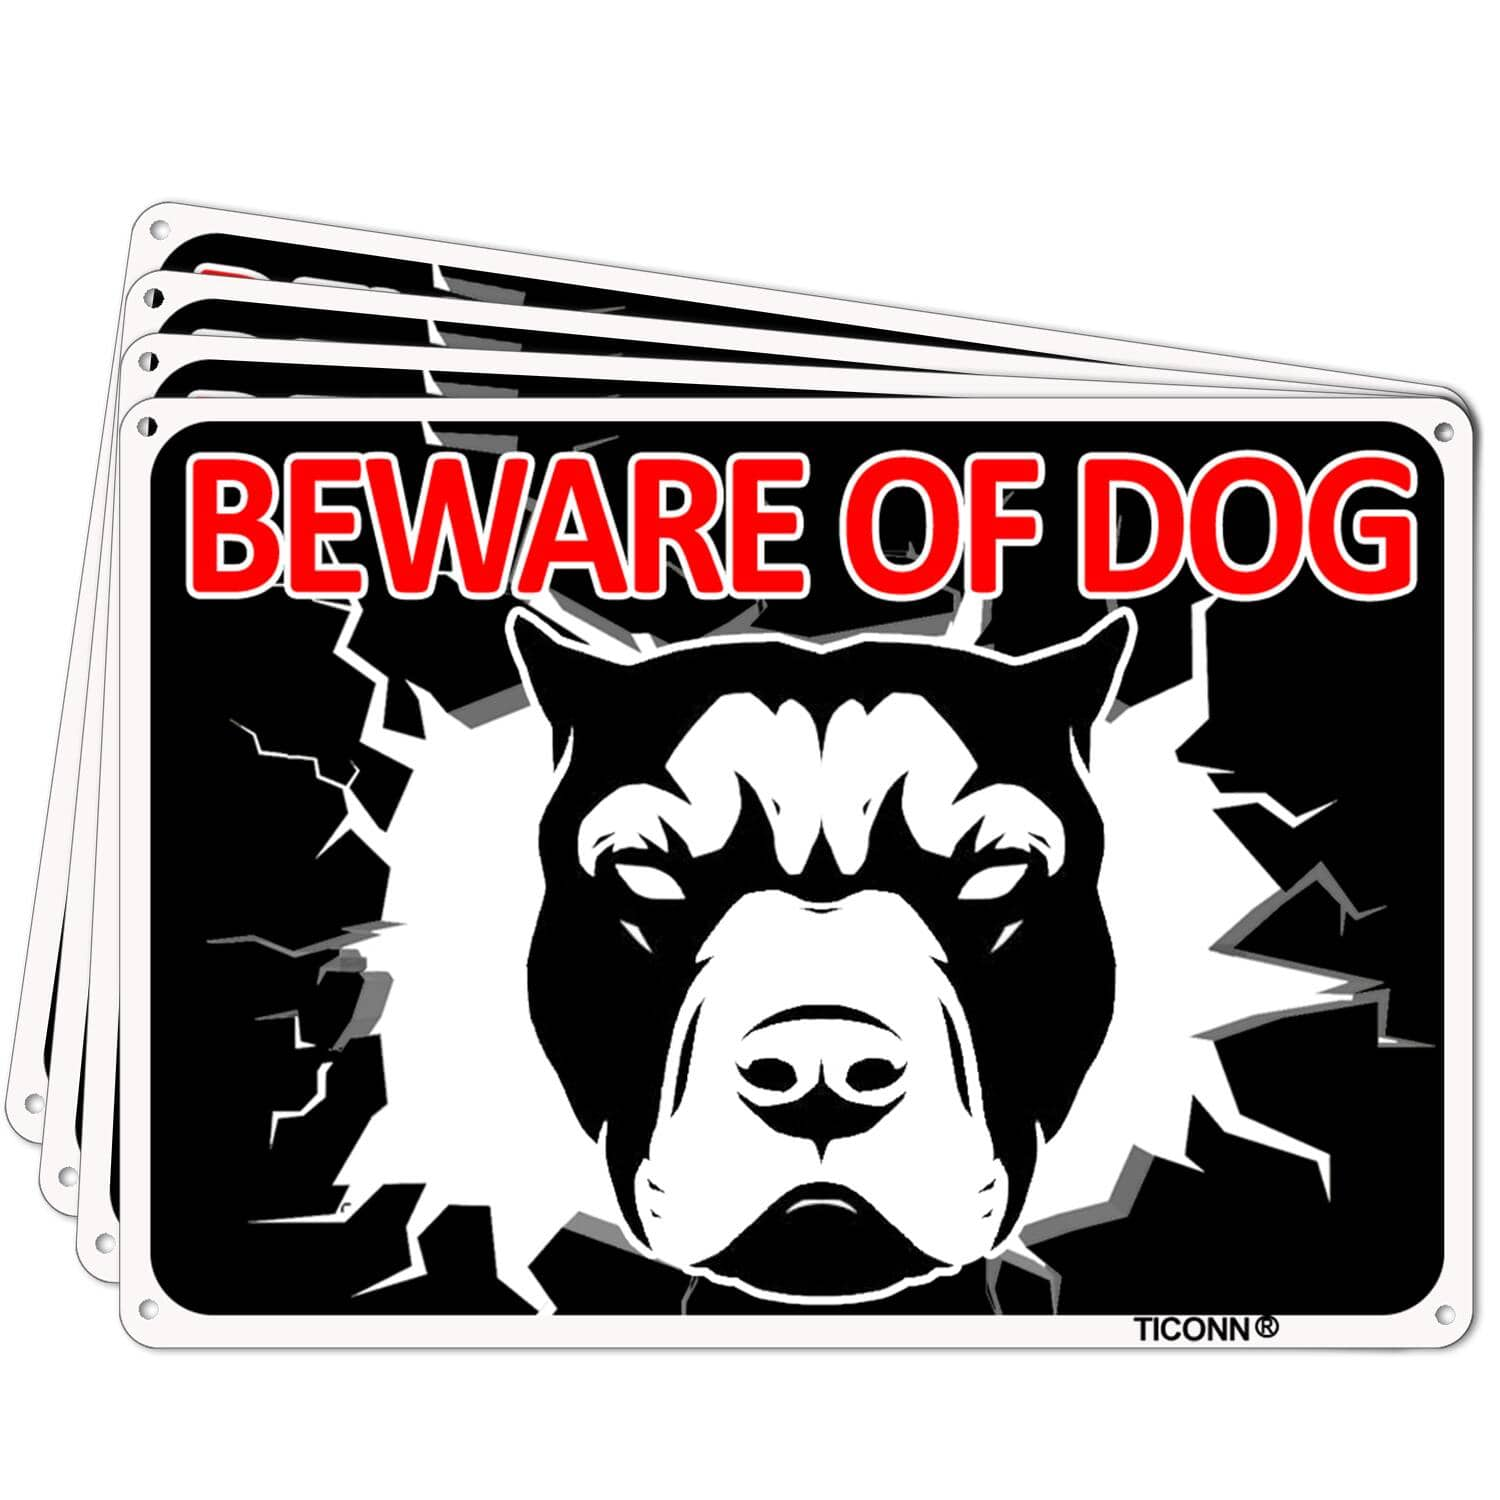 TICONN Beware of Dog/You're On Camera Sign 2pk/4pk from $5.59